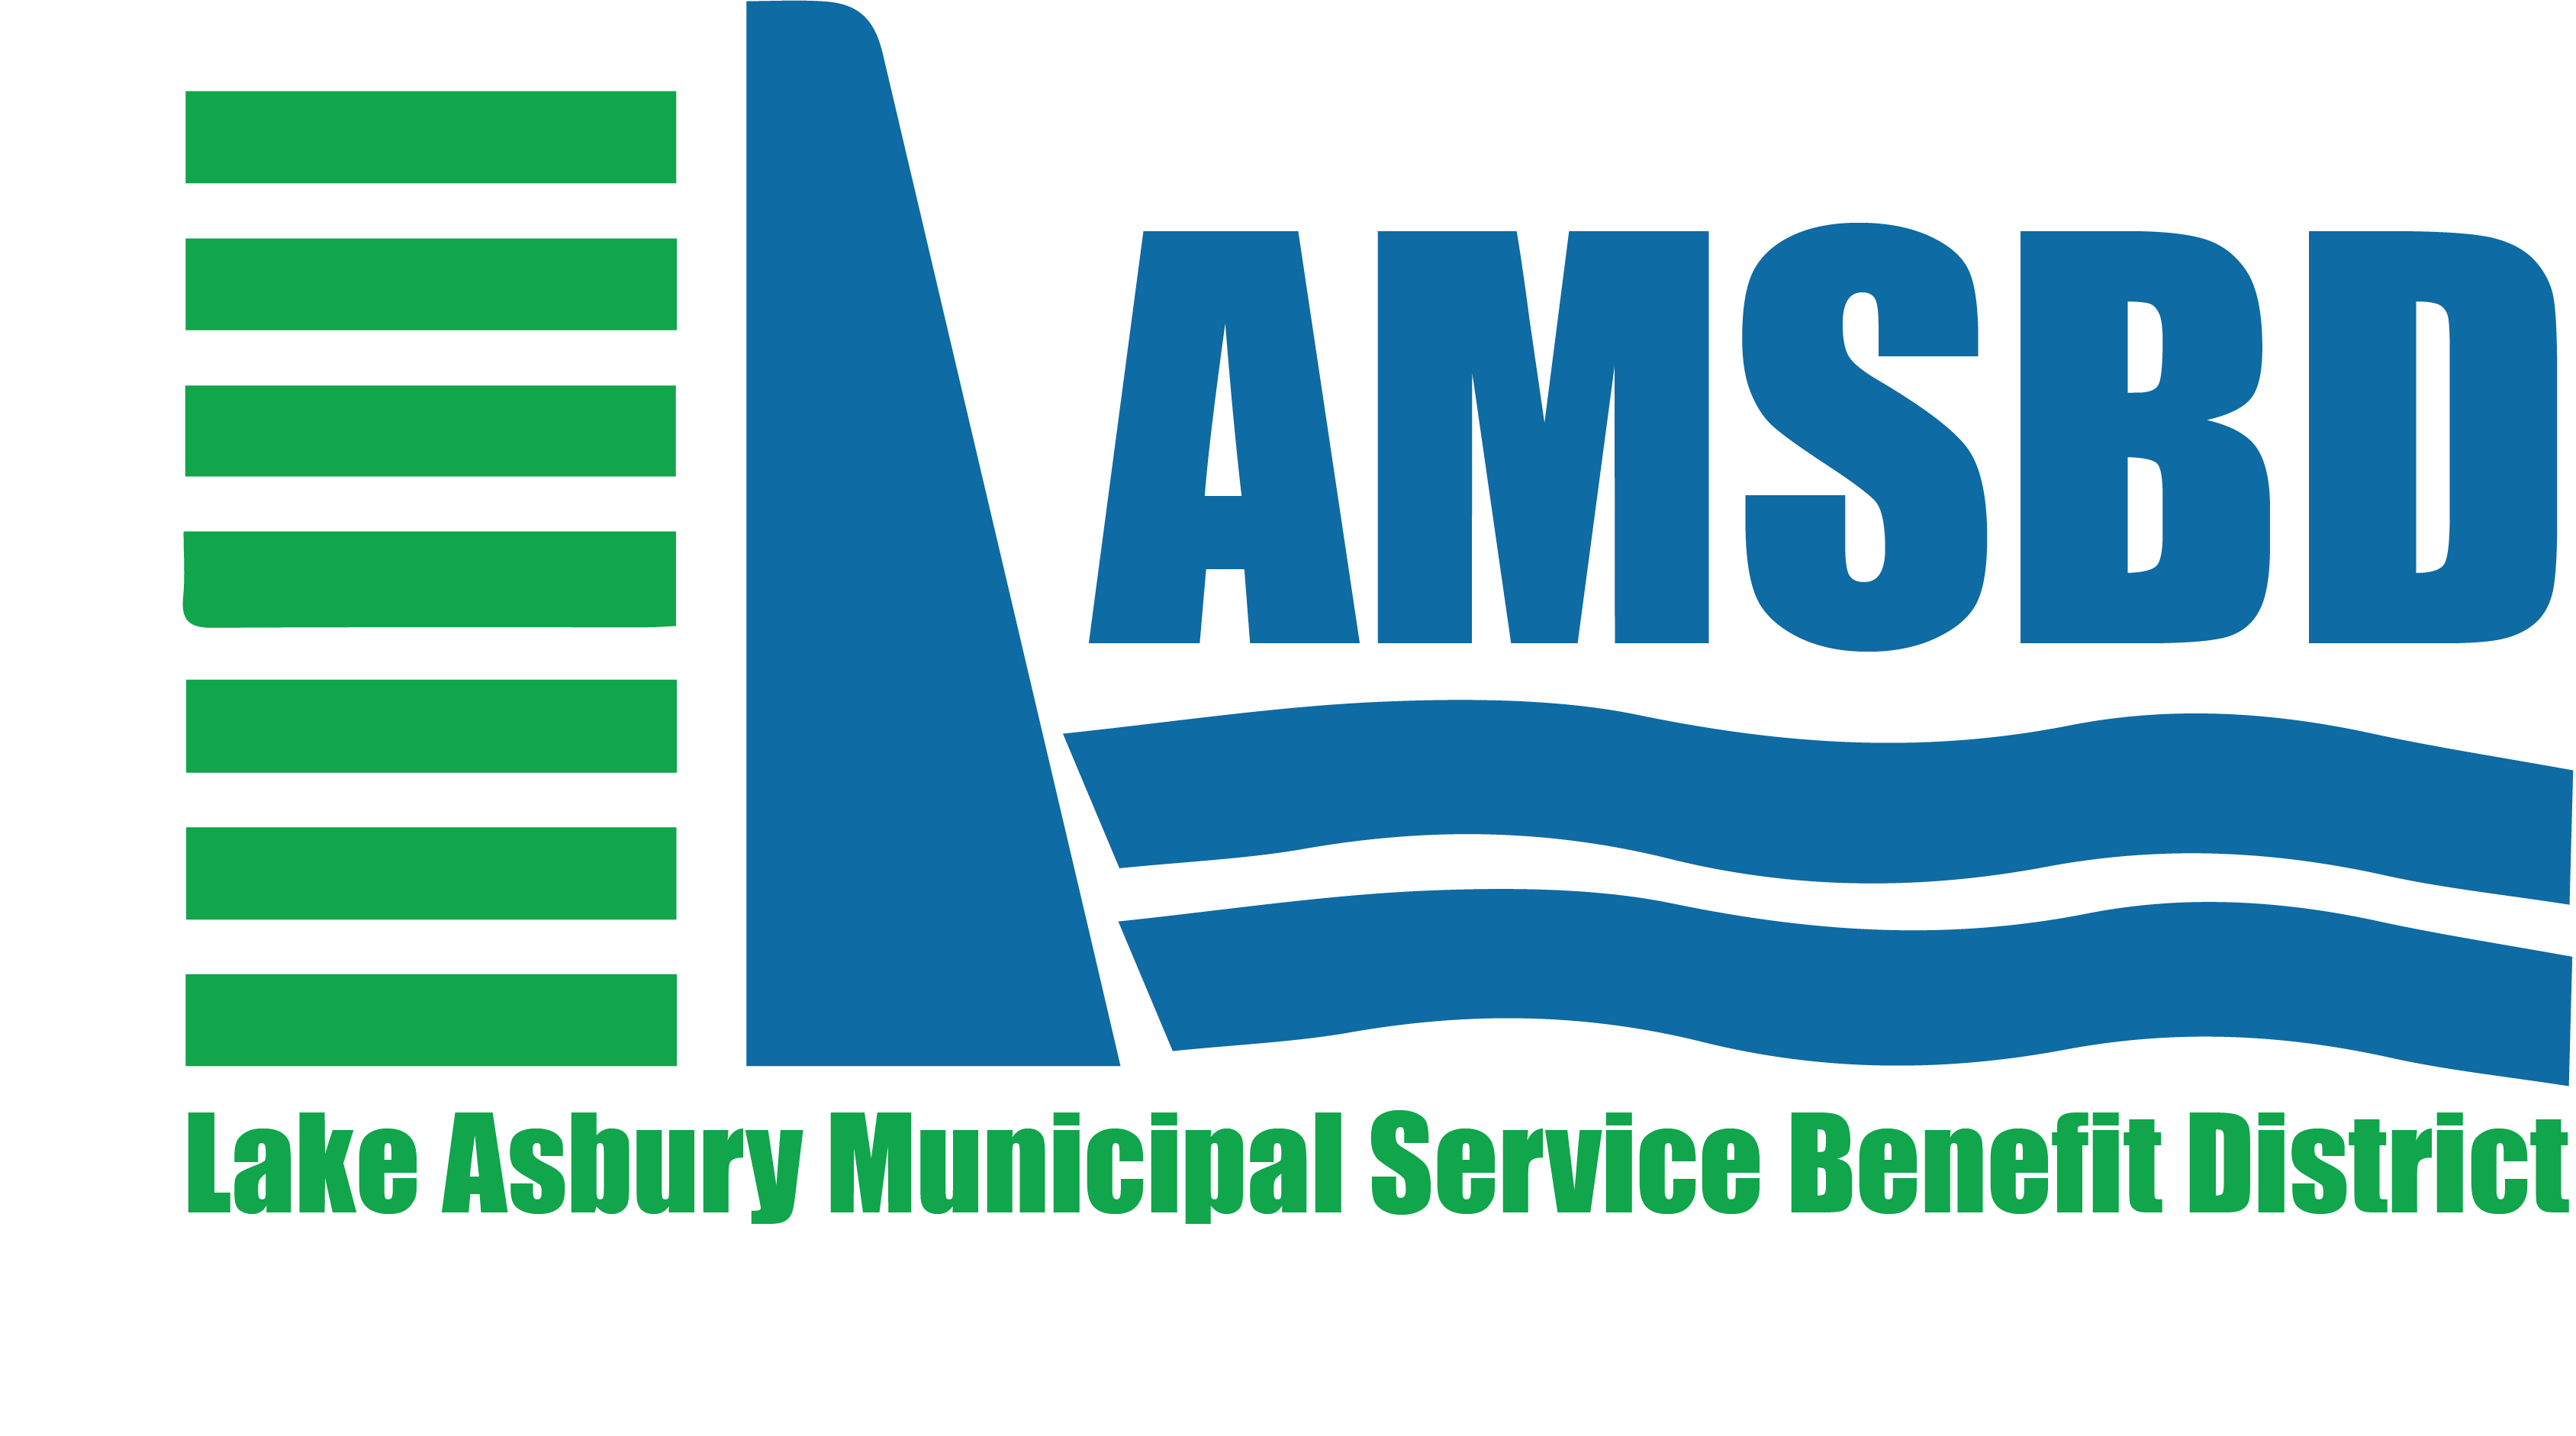 Lake Asbury Municipal Service Benefit District